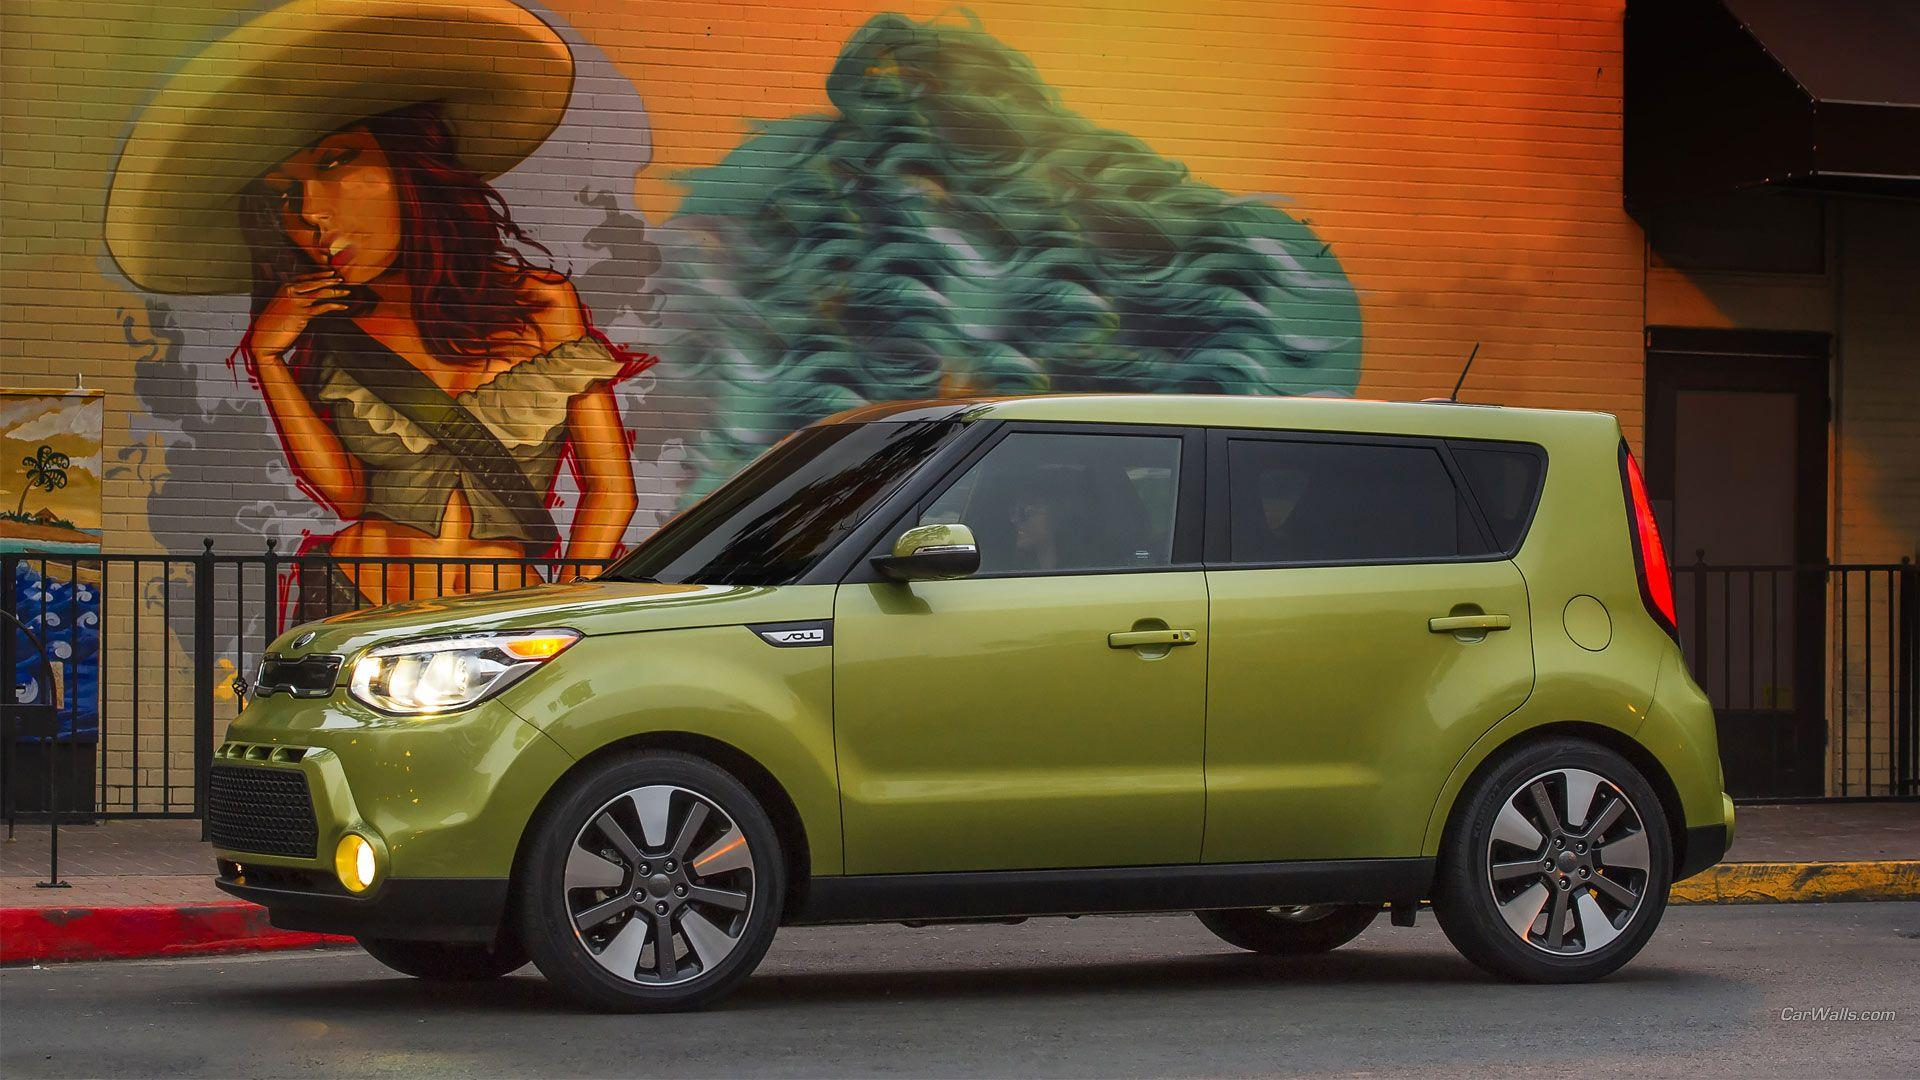 Kia Soul Full HD Wallpaper and Background Image | 1920x1080 | ID:449850